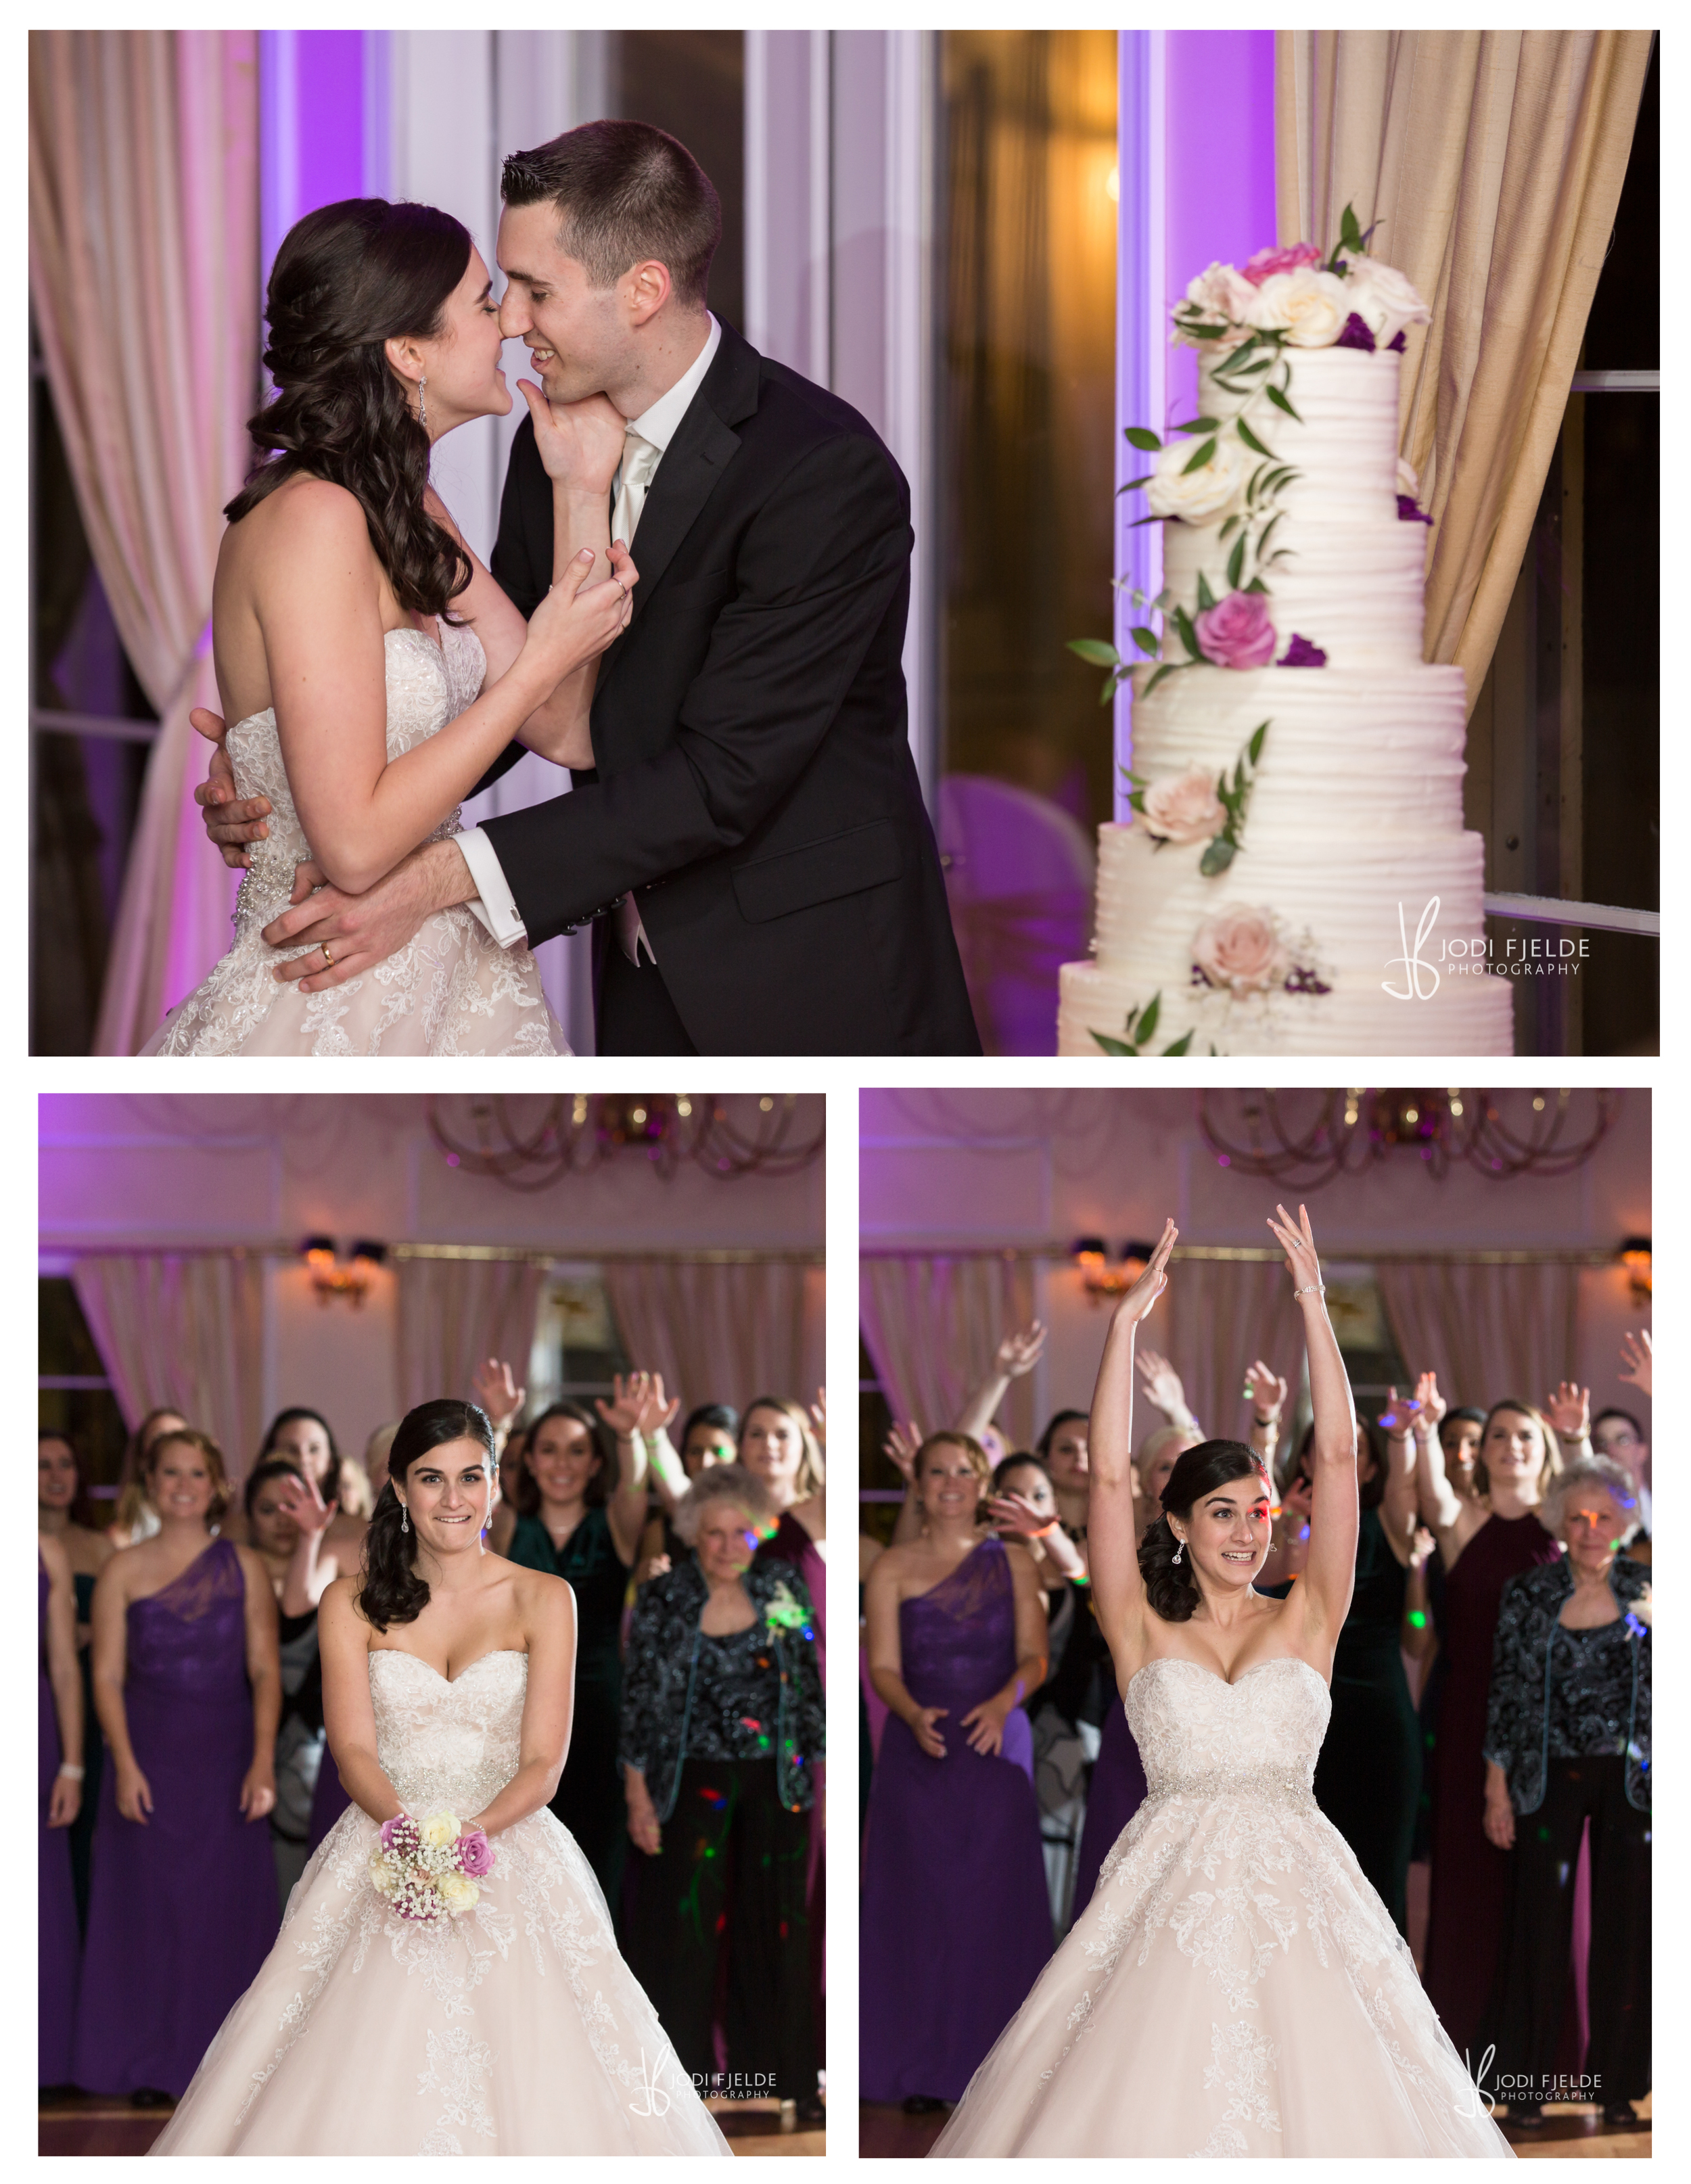 Benvenuto_Palm_Beach_Wedding_Jewish_Michelle & Jason_Jodi_Fjedle_Photography 72.jpg